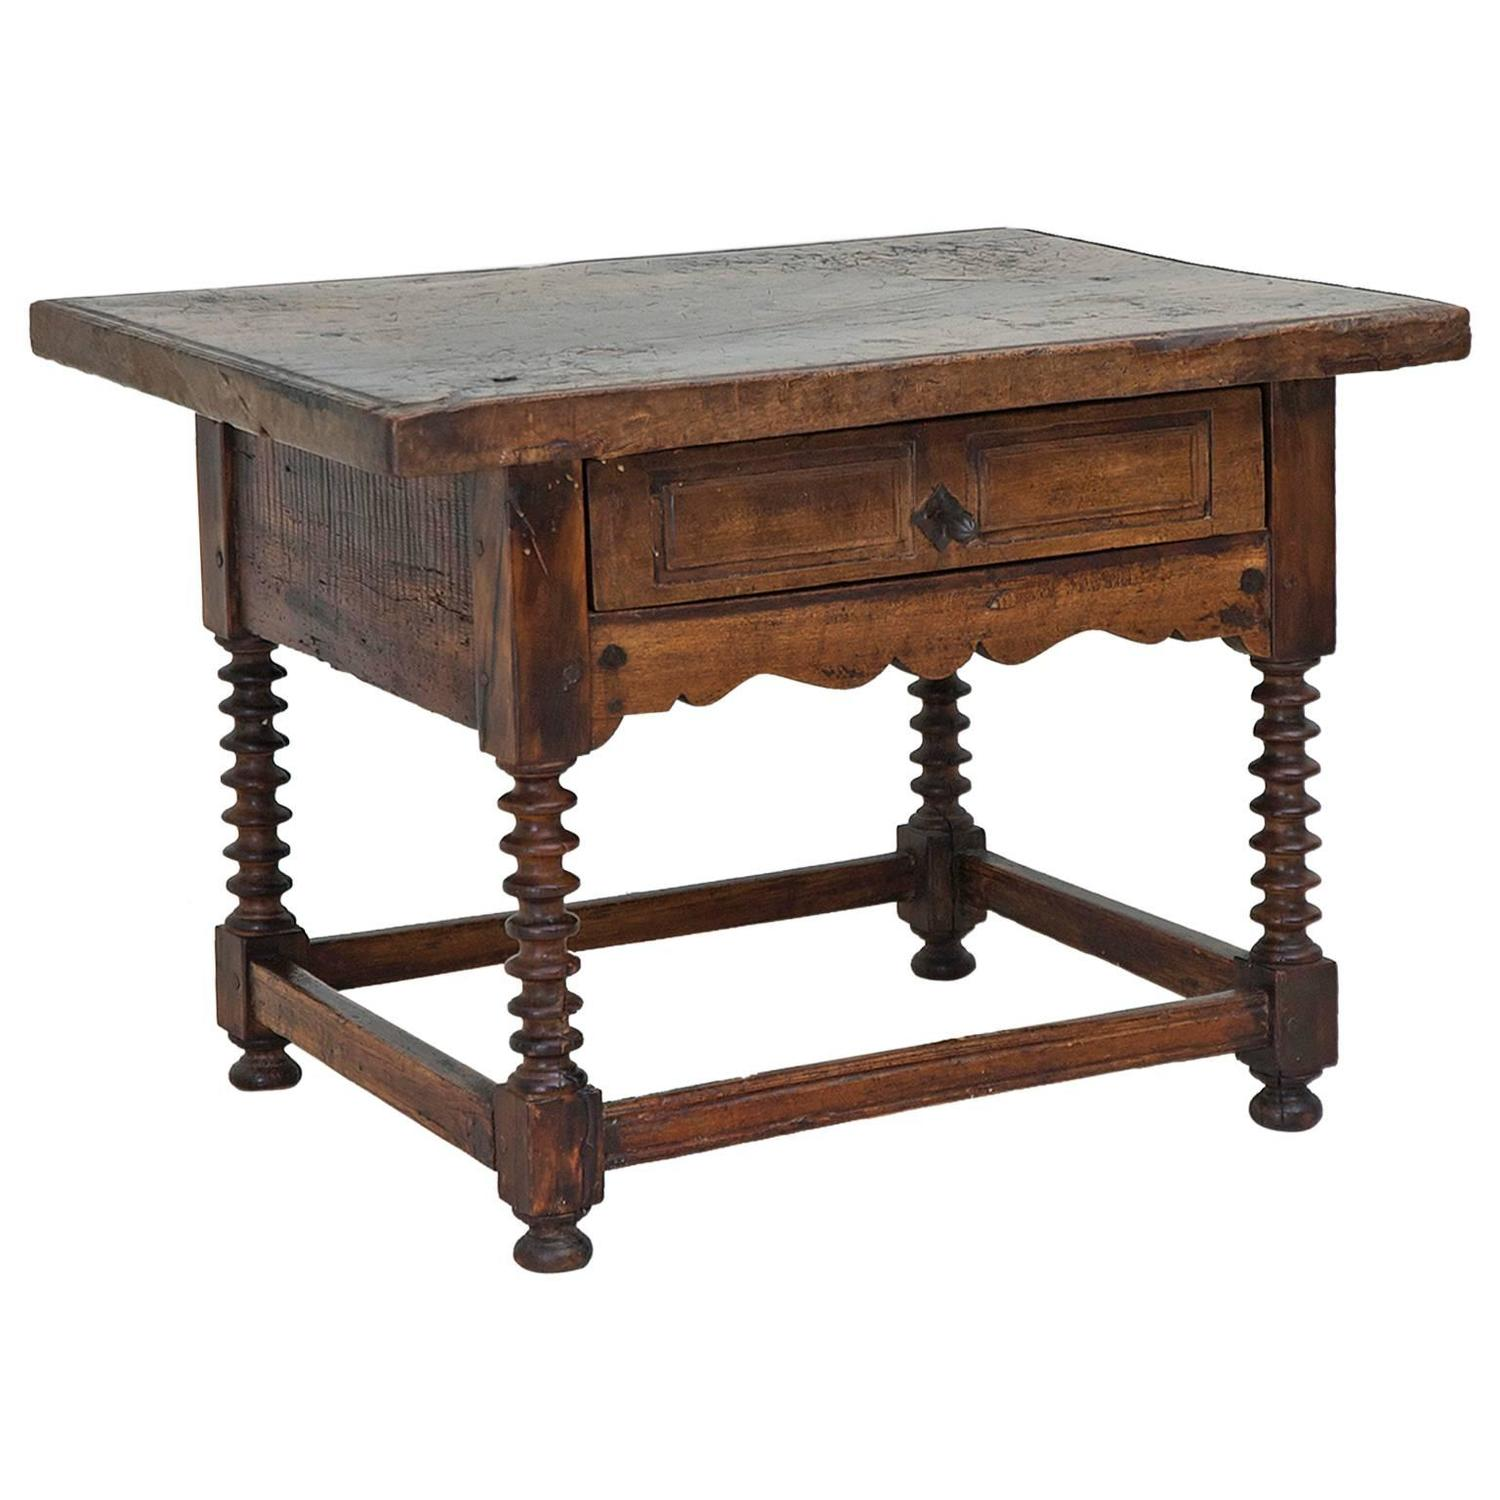 Antique Rustic Spanish Shoemaker s Table in Walnut Bonnin Ashley